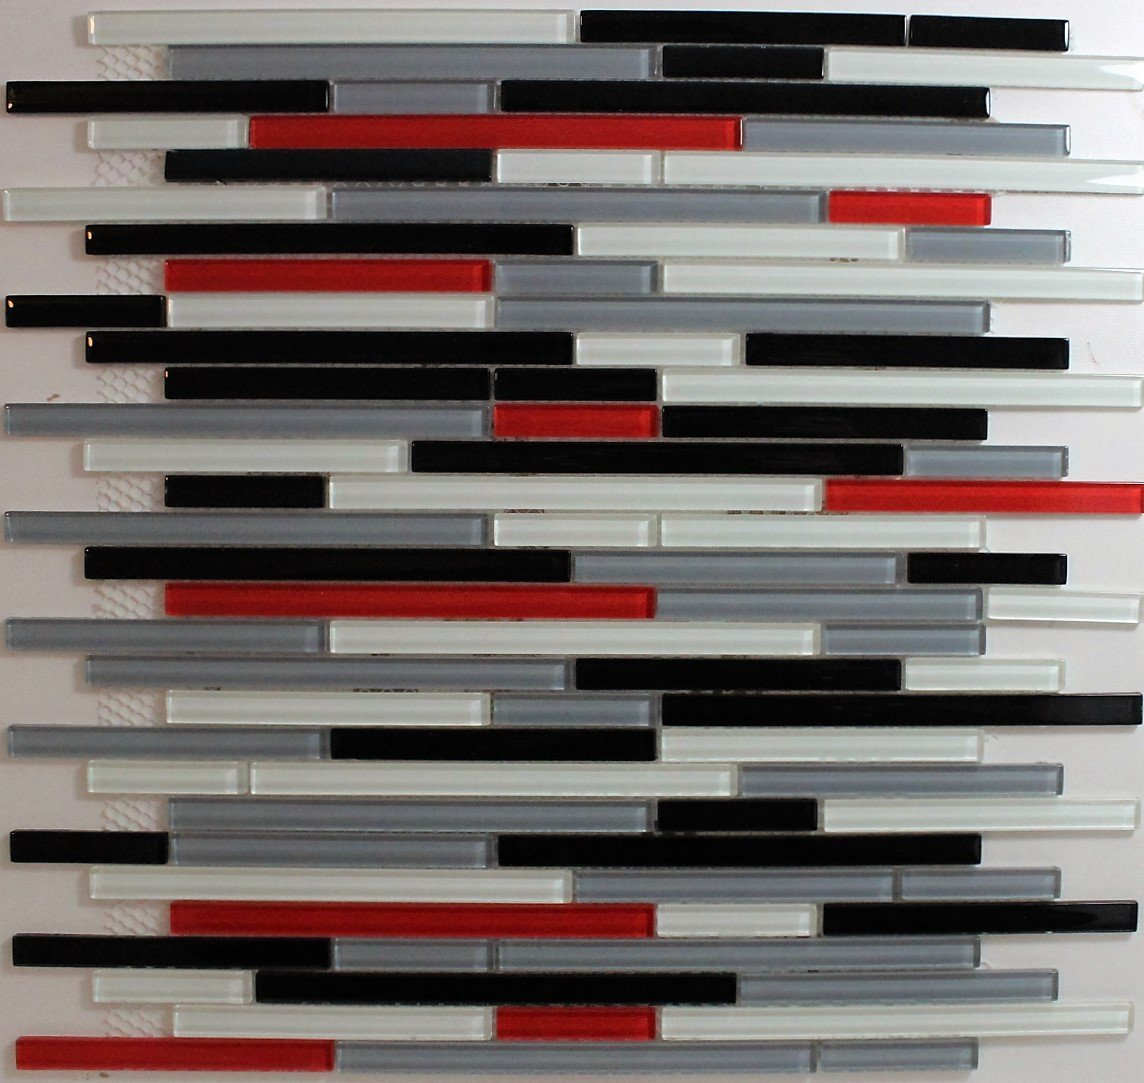 Glass mosaic backsplash tiles subway slate glass mix for Red and black kitchen backsplash